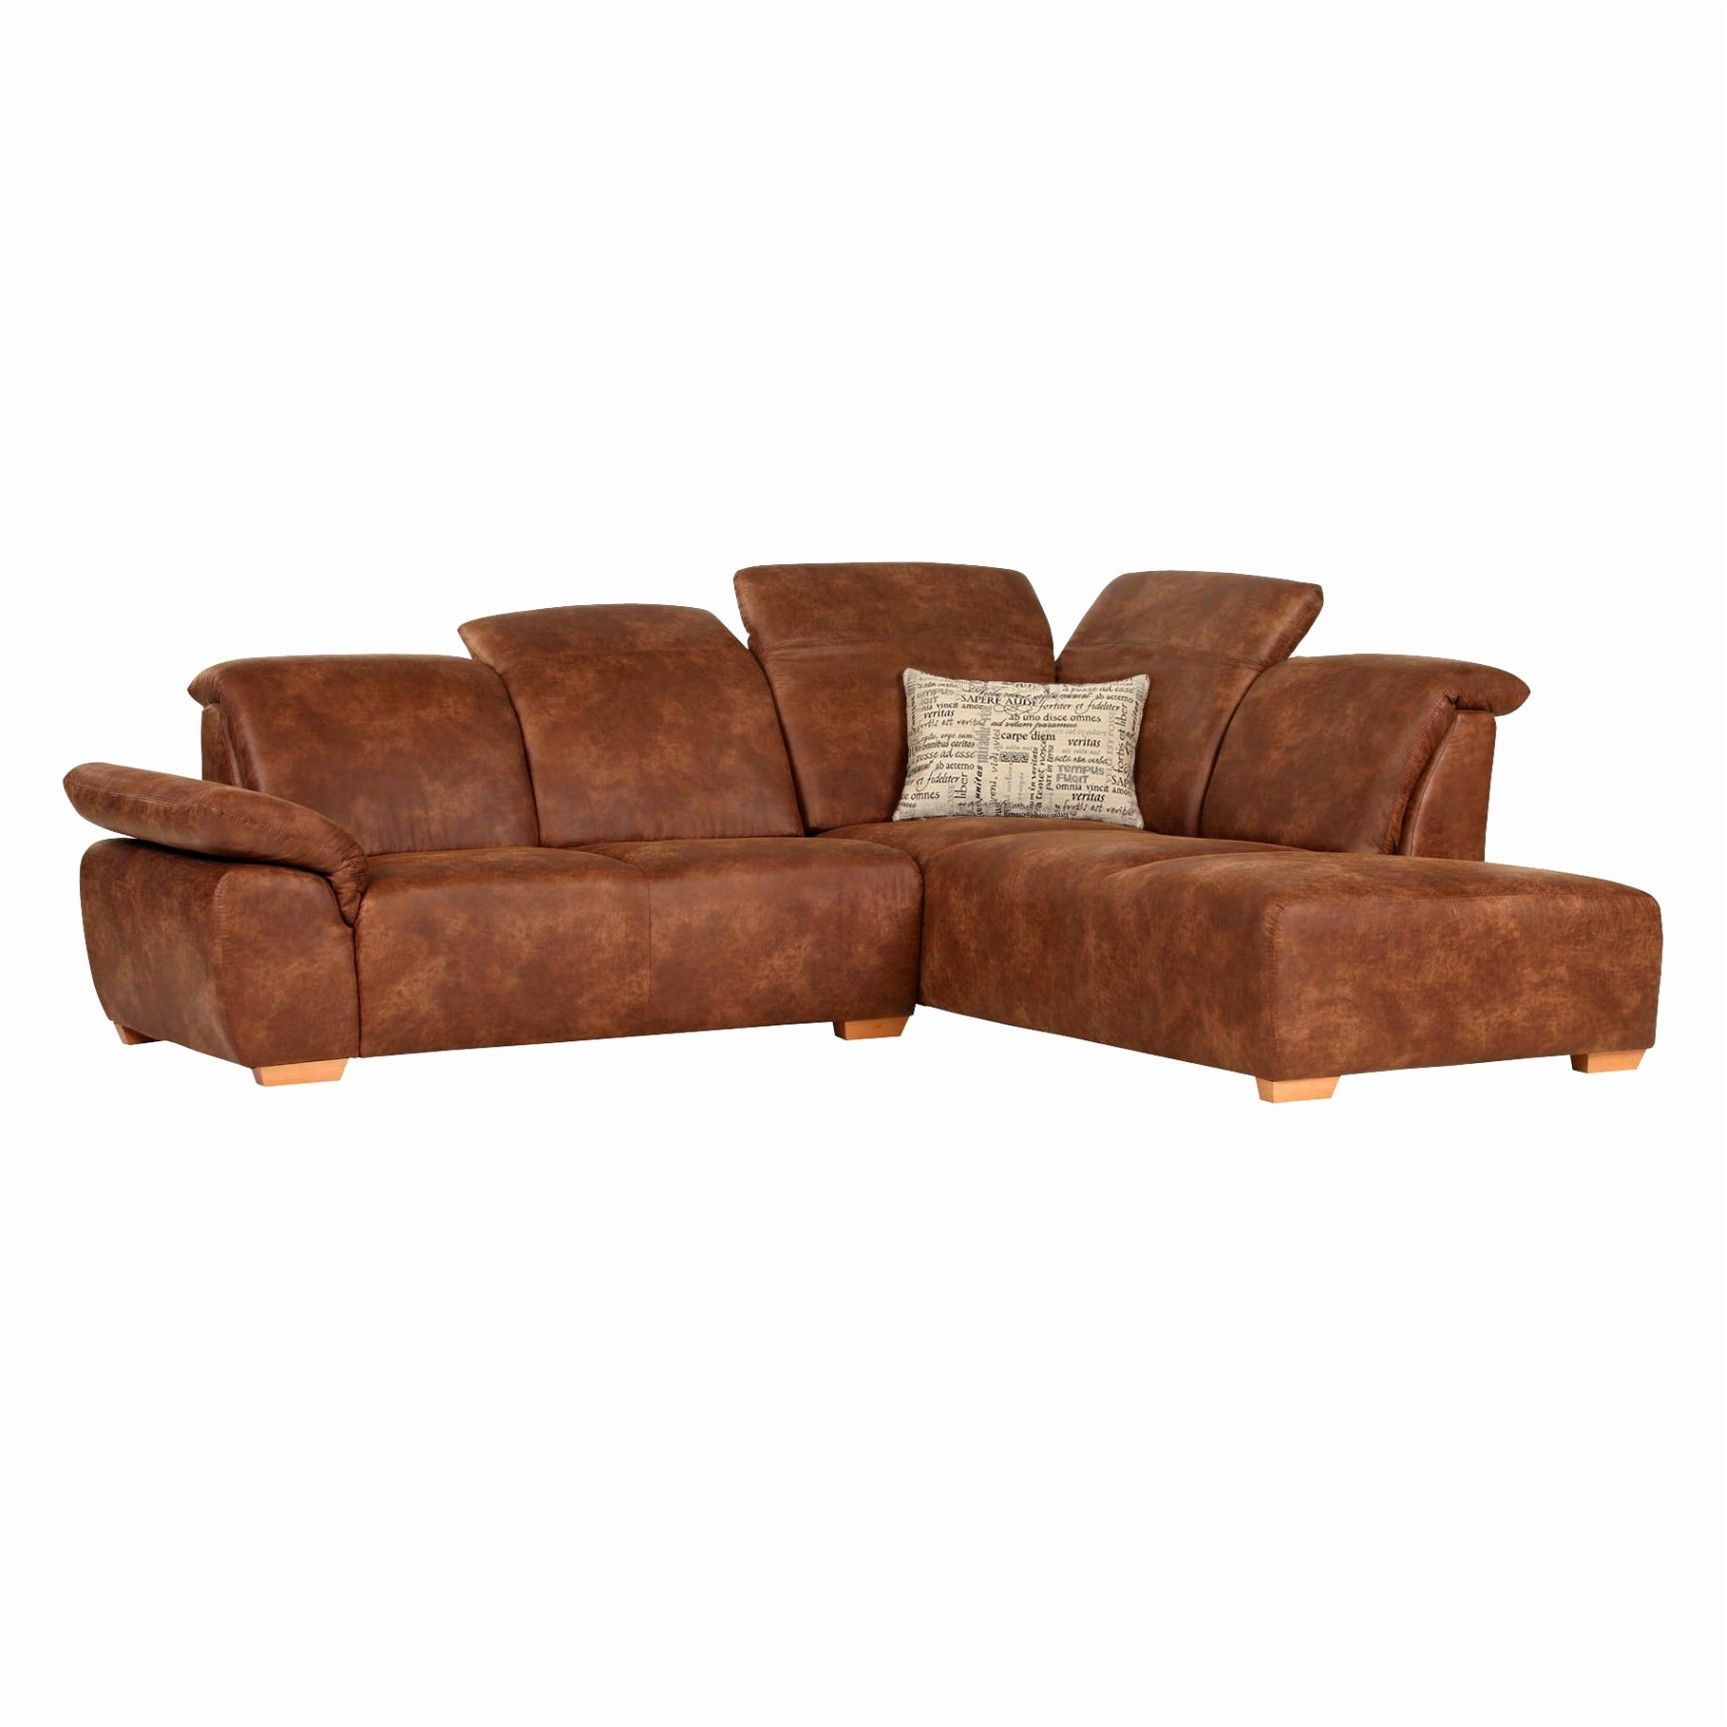 Chesterfield Sofa Mit Schlaffunktion Sauber Alcantara Couch Couch Möbel Sofa Couch Chesterfield Sofa